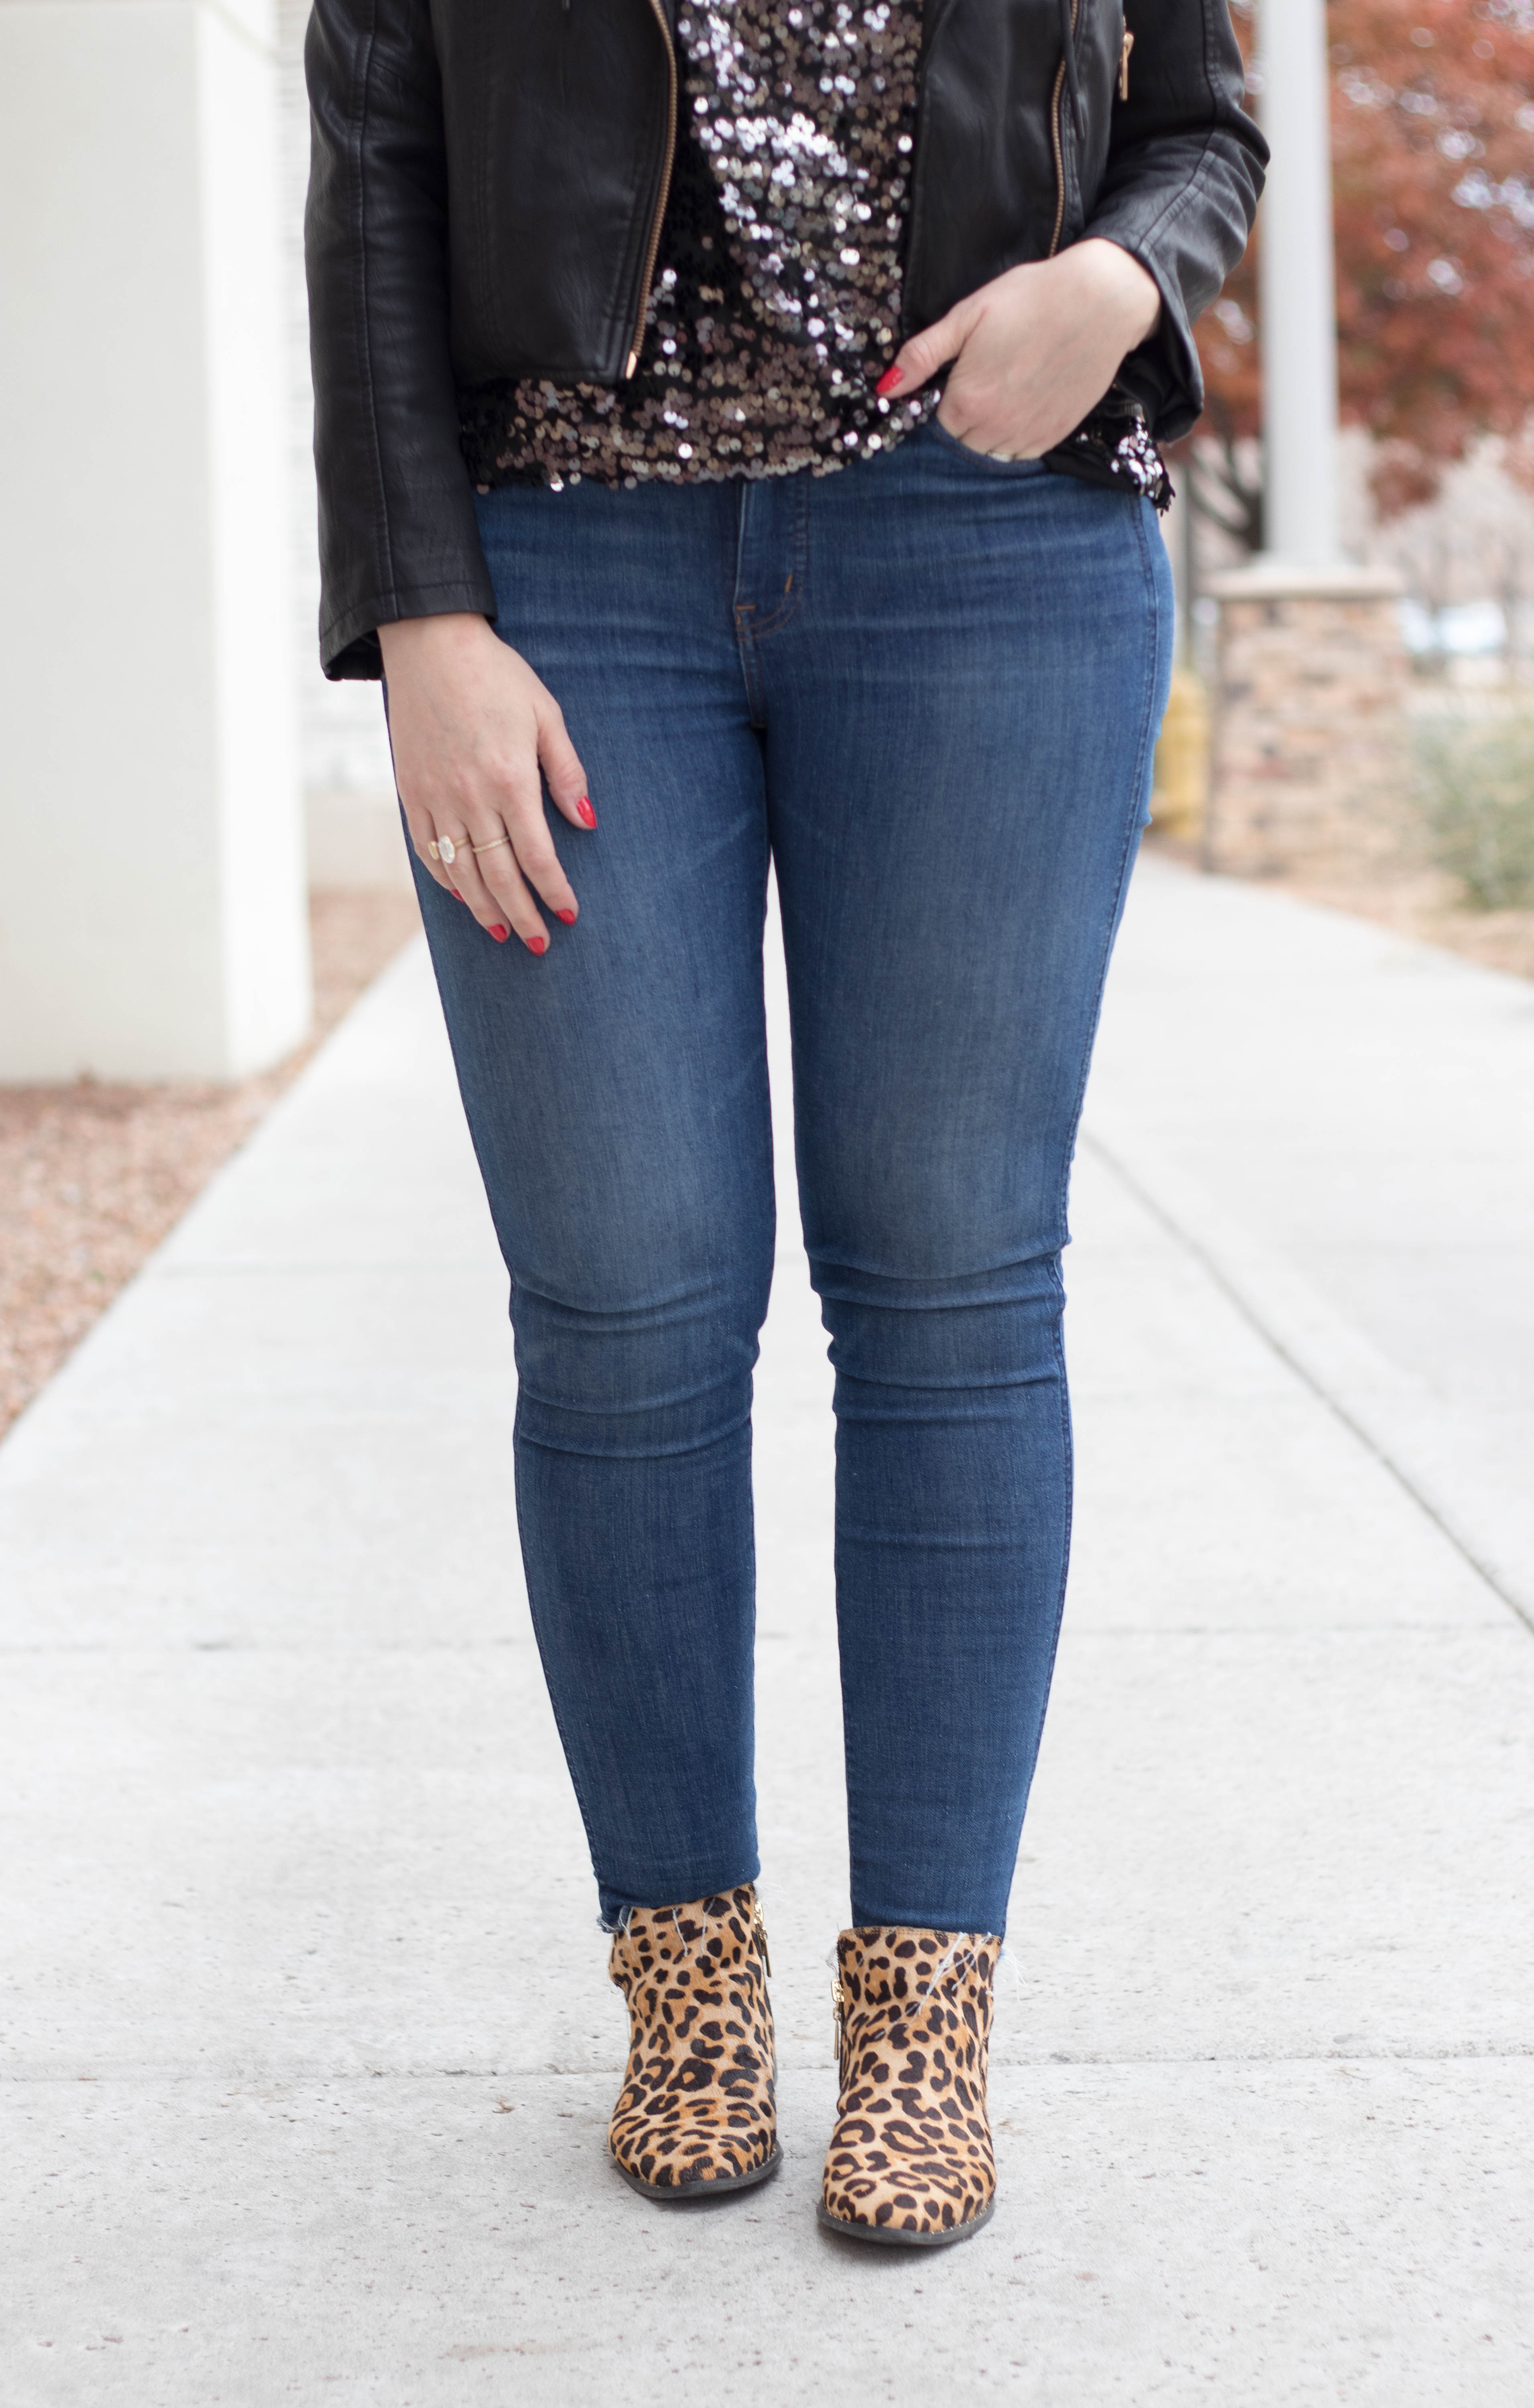 Steven leopard ankle boots #ankleboots #madewelljeans #tallfashion